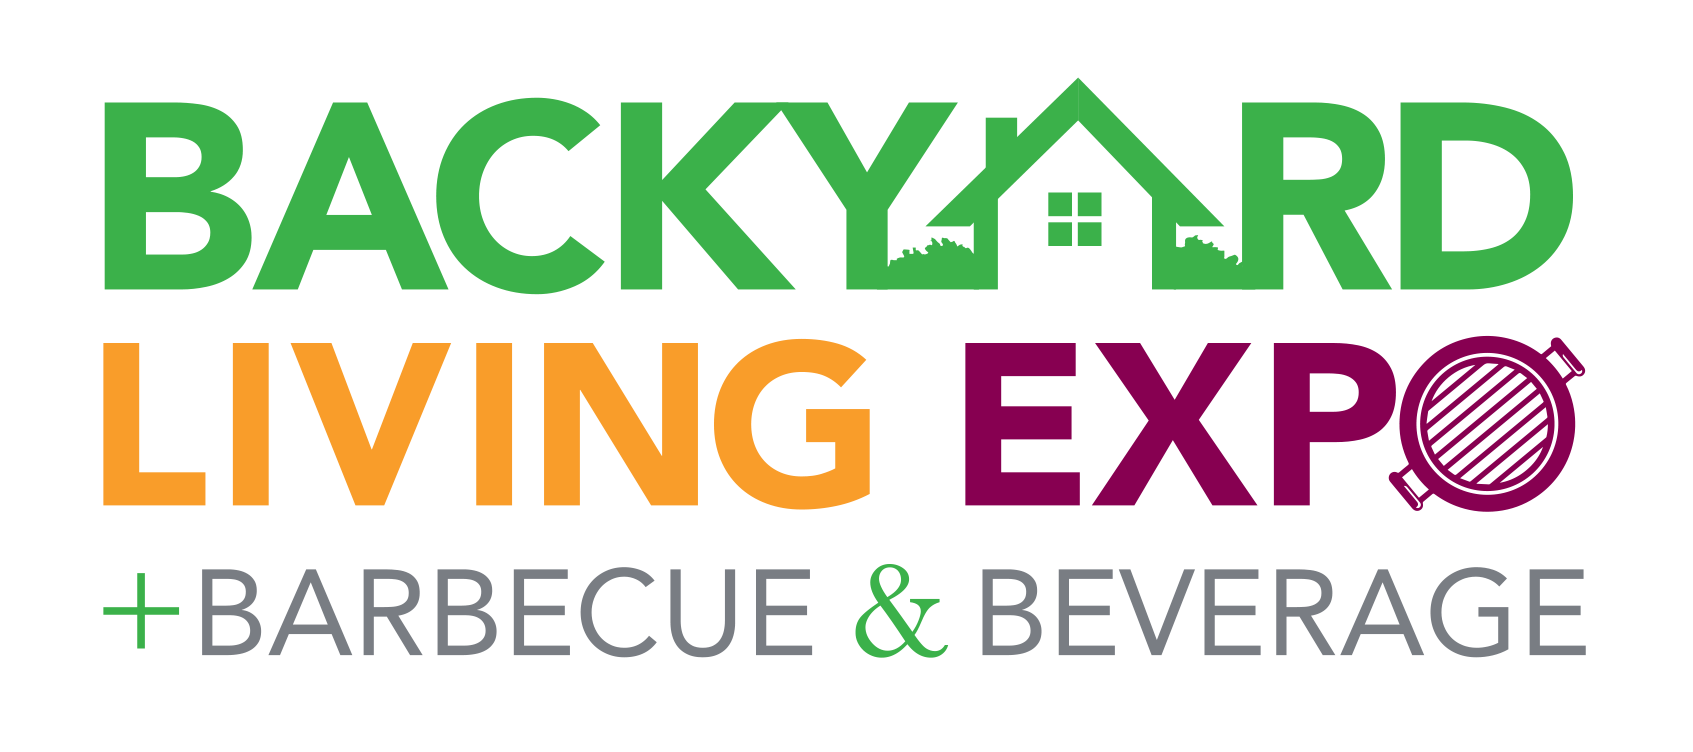 [CANCELLED] Backyard Living Expo + Barbecue & Beverage